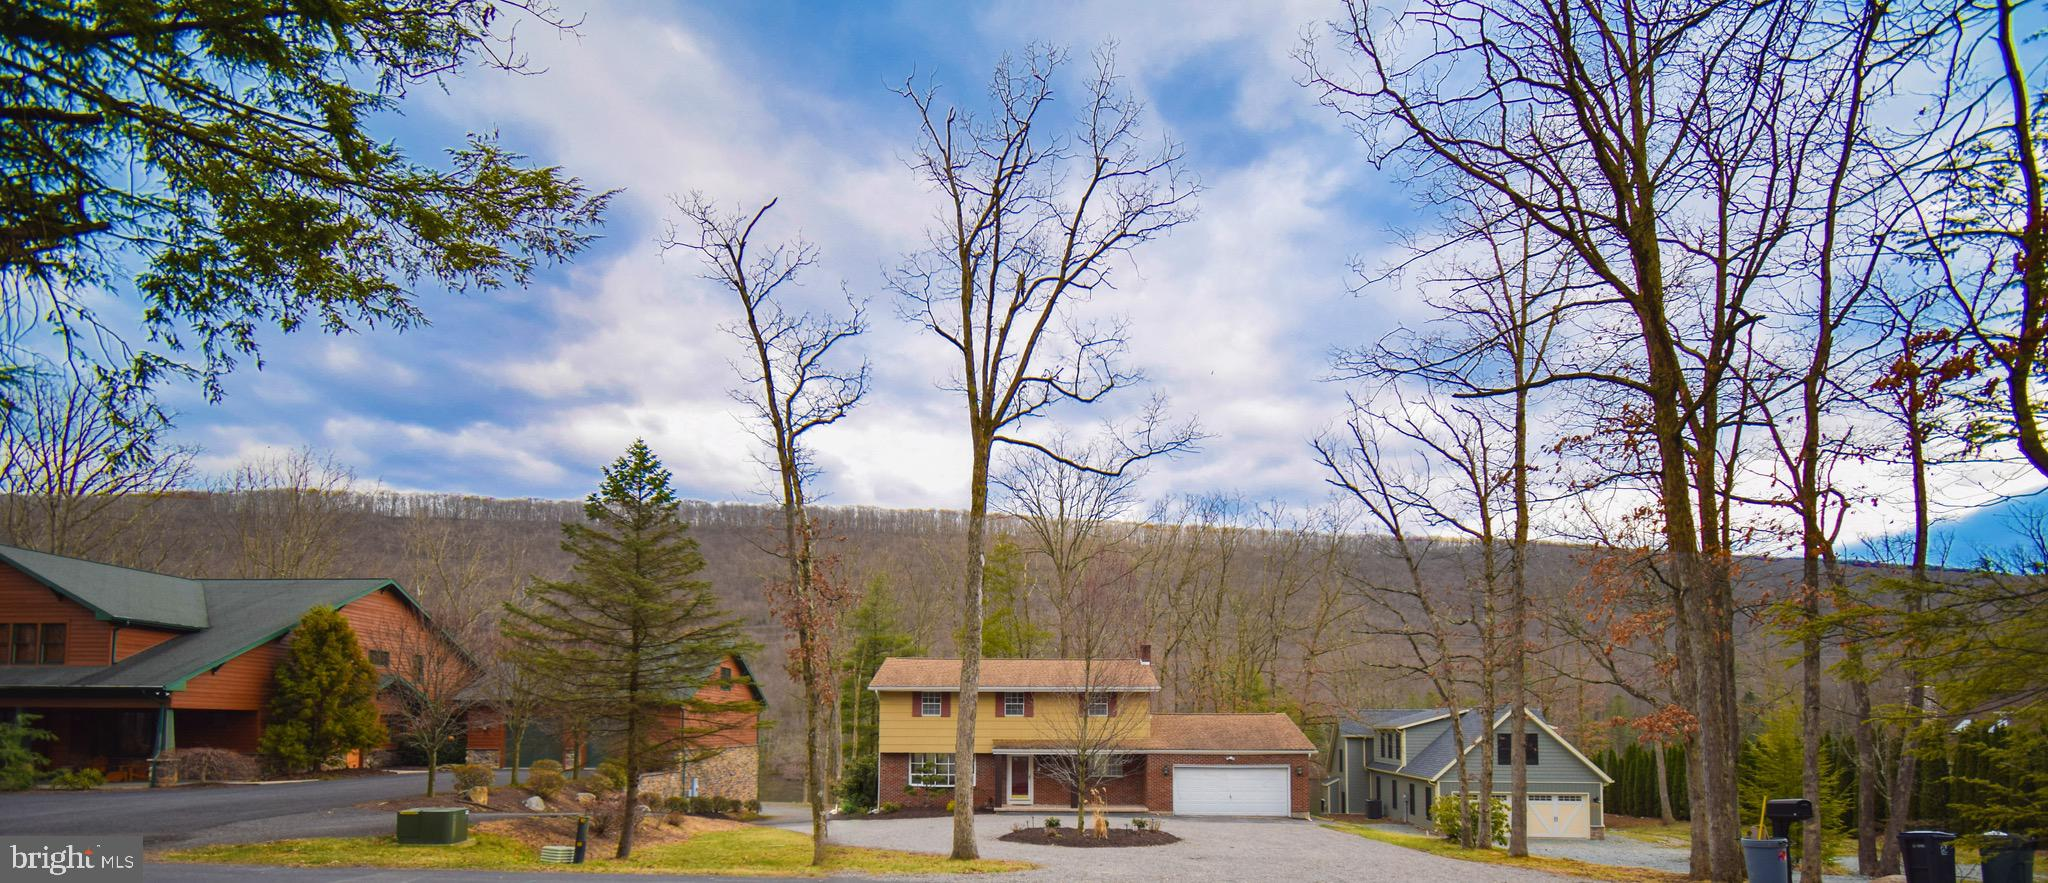 48 GREAT OAKS DRIVE, NESQUEHONING, PA 18240